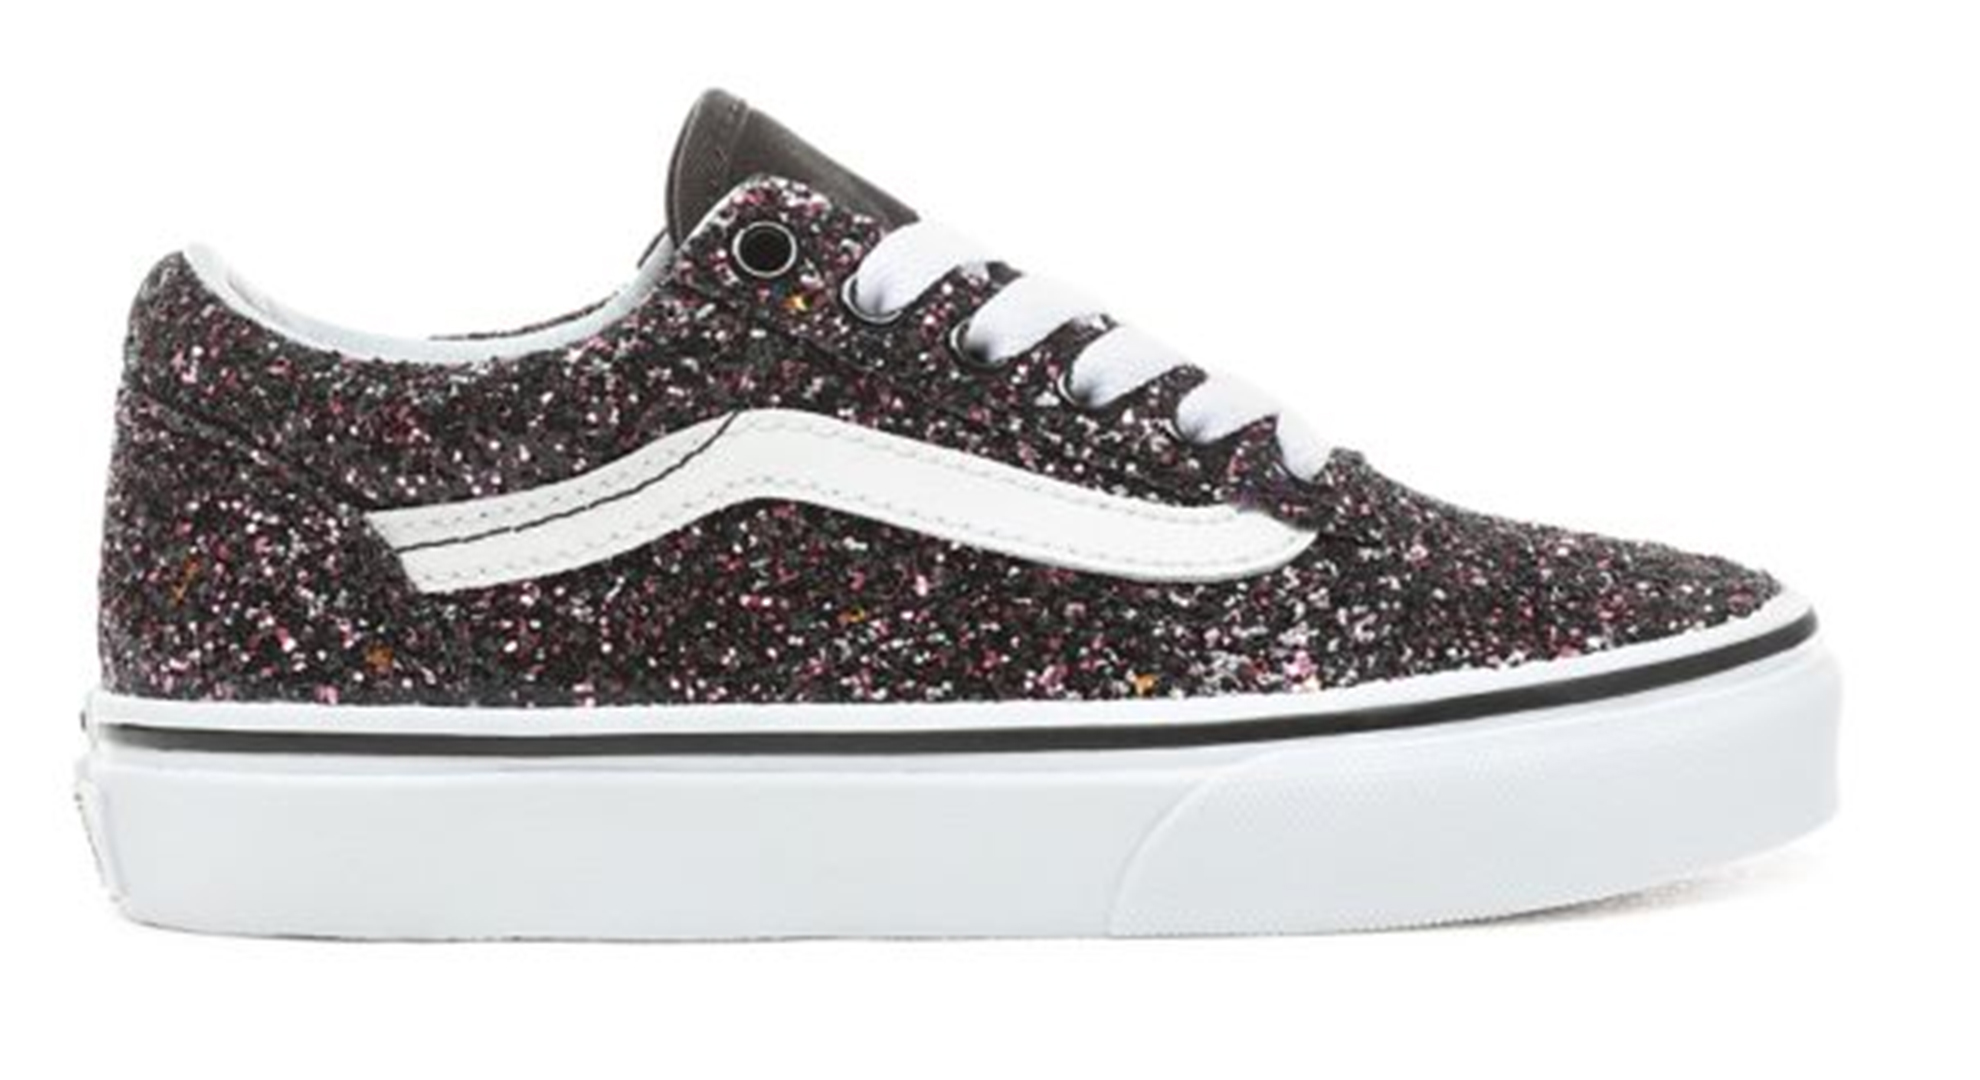 2019 Stars Schuh Glitter White Kids Old Skool Blacktrue qSVGUzMLp